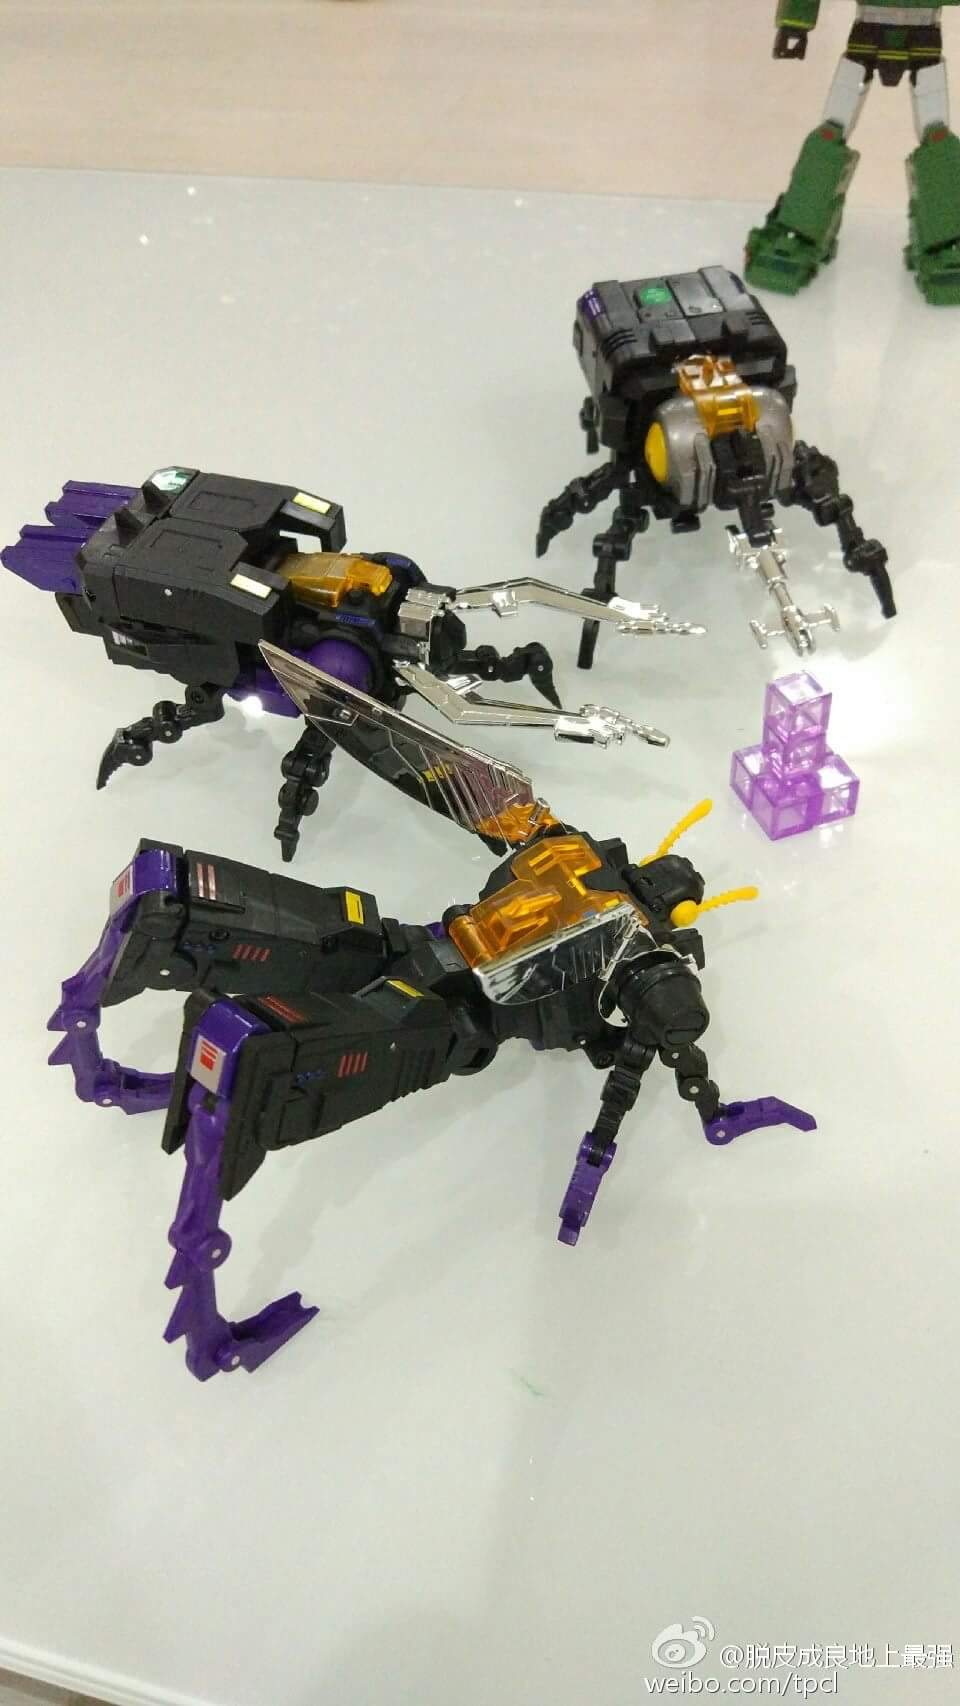 [Fanstoys] Produit Tiers - Jouet FT-12 Grenadier / FT-13 Mercenary / FT-14 Forager - aka Insecticons - Page 4 N6TzersN